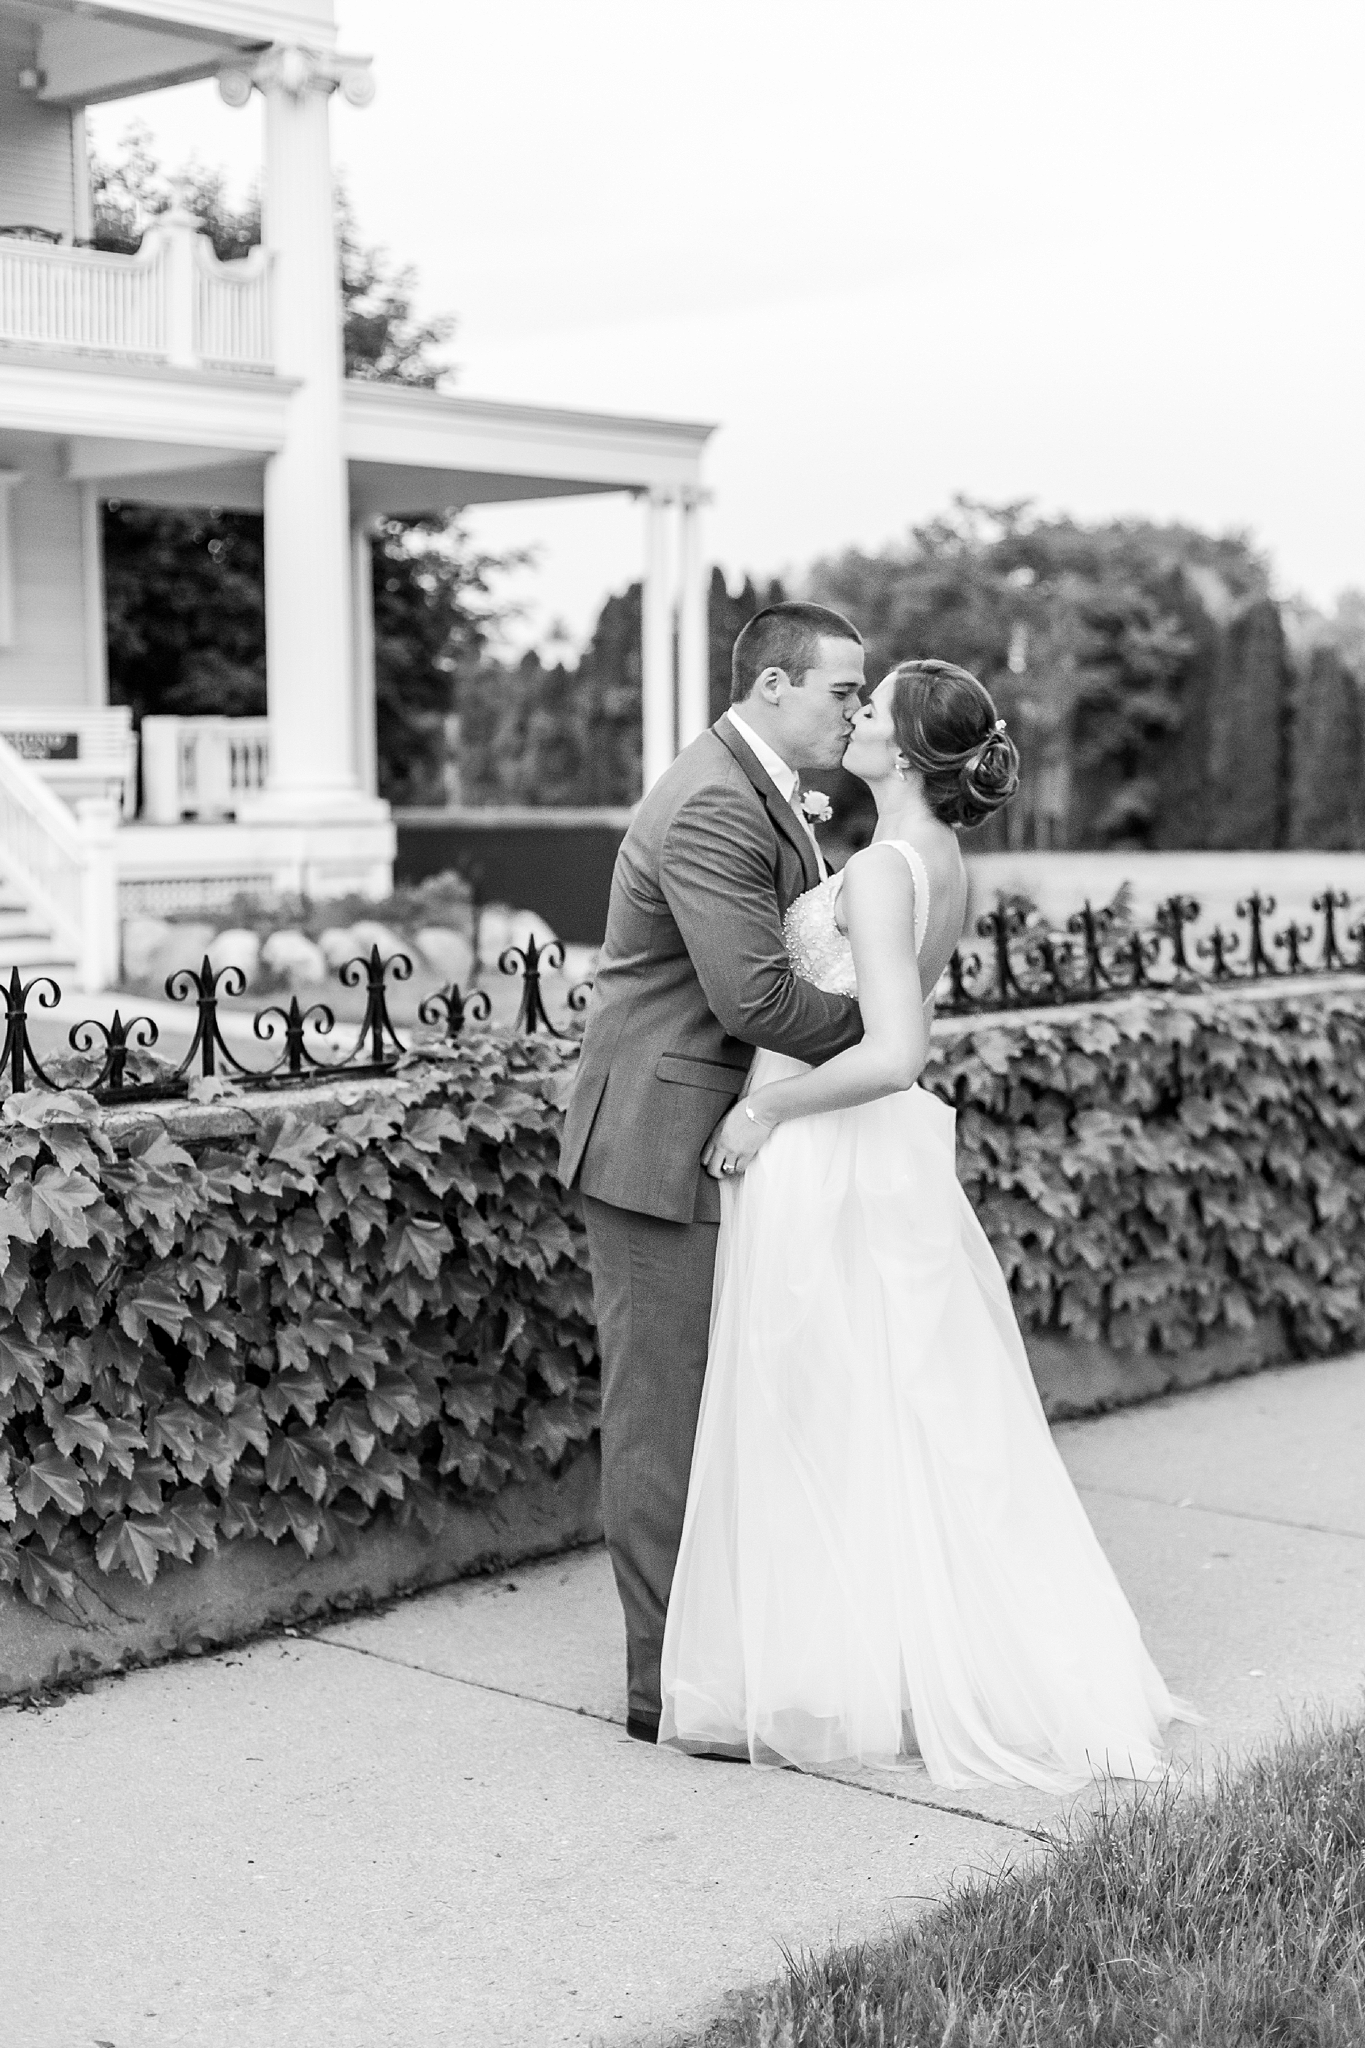 joyful-romantic-modern-laid-back-wedding-photography-in-detroit-ann-arbor-northern-mi-and-chicago-by-courtney-carolyn-photography_0038.jpg